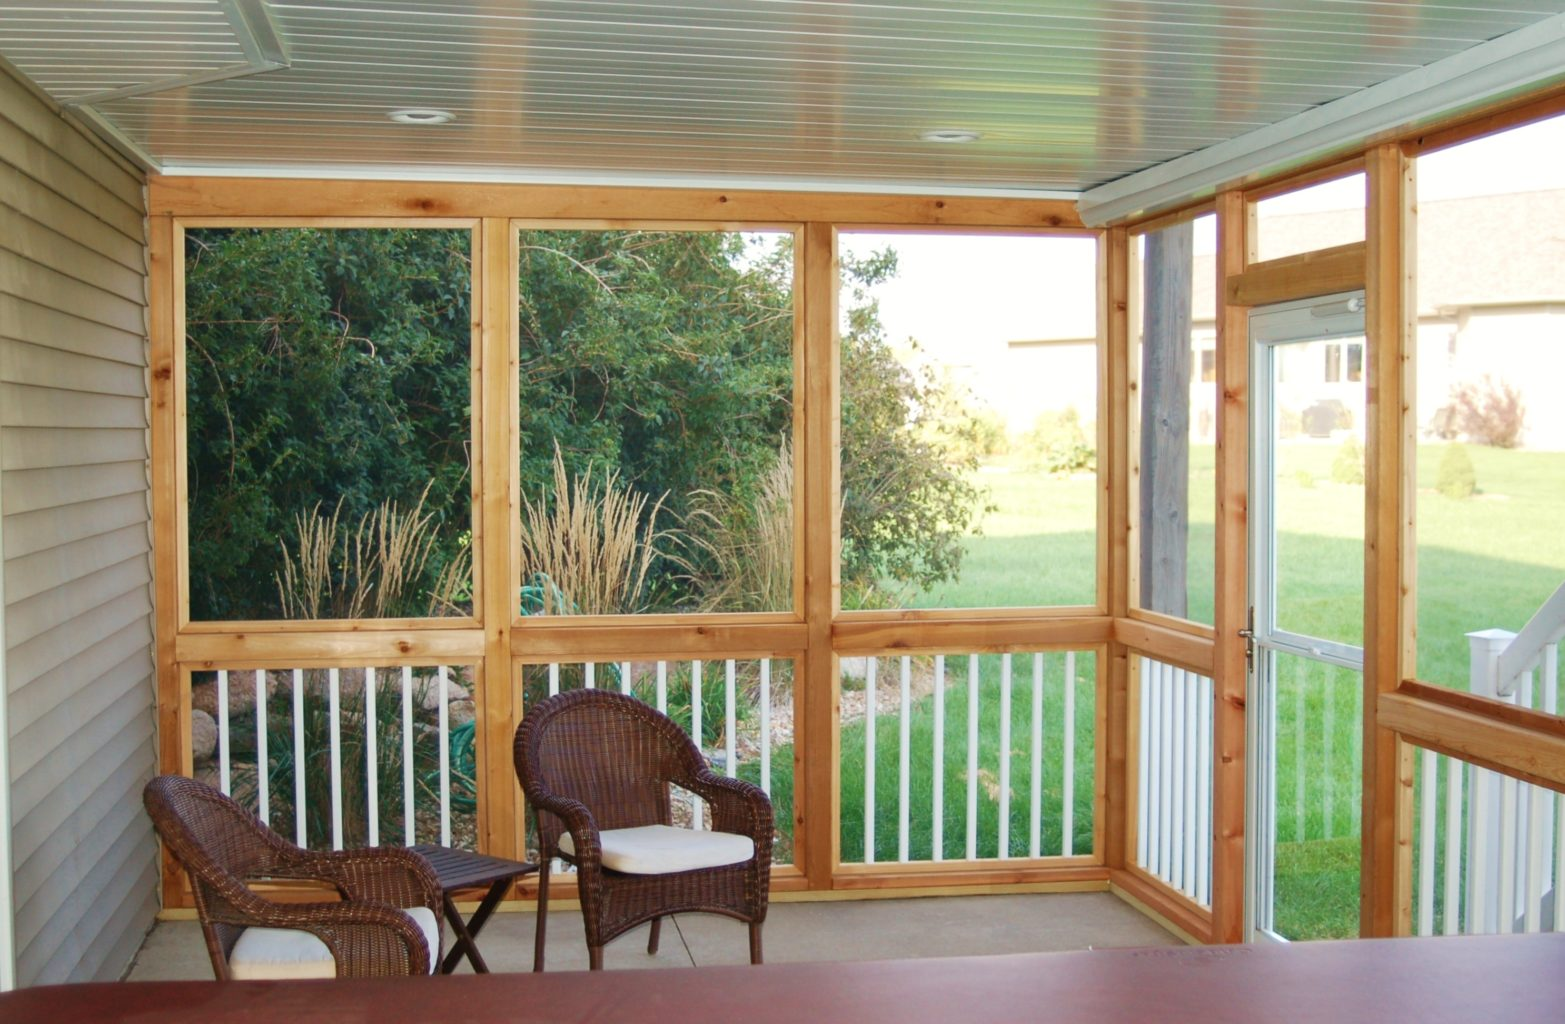 Screened Porch with chairs